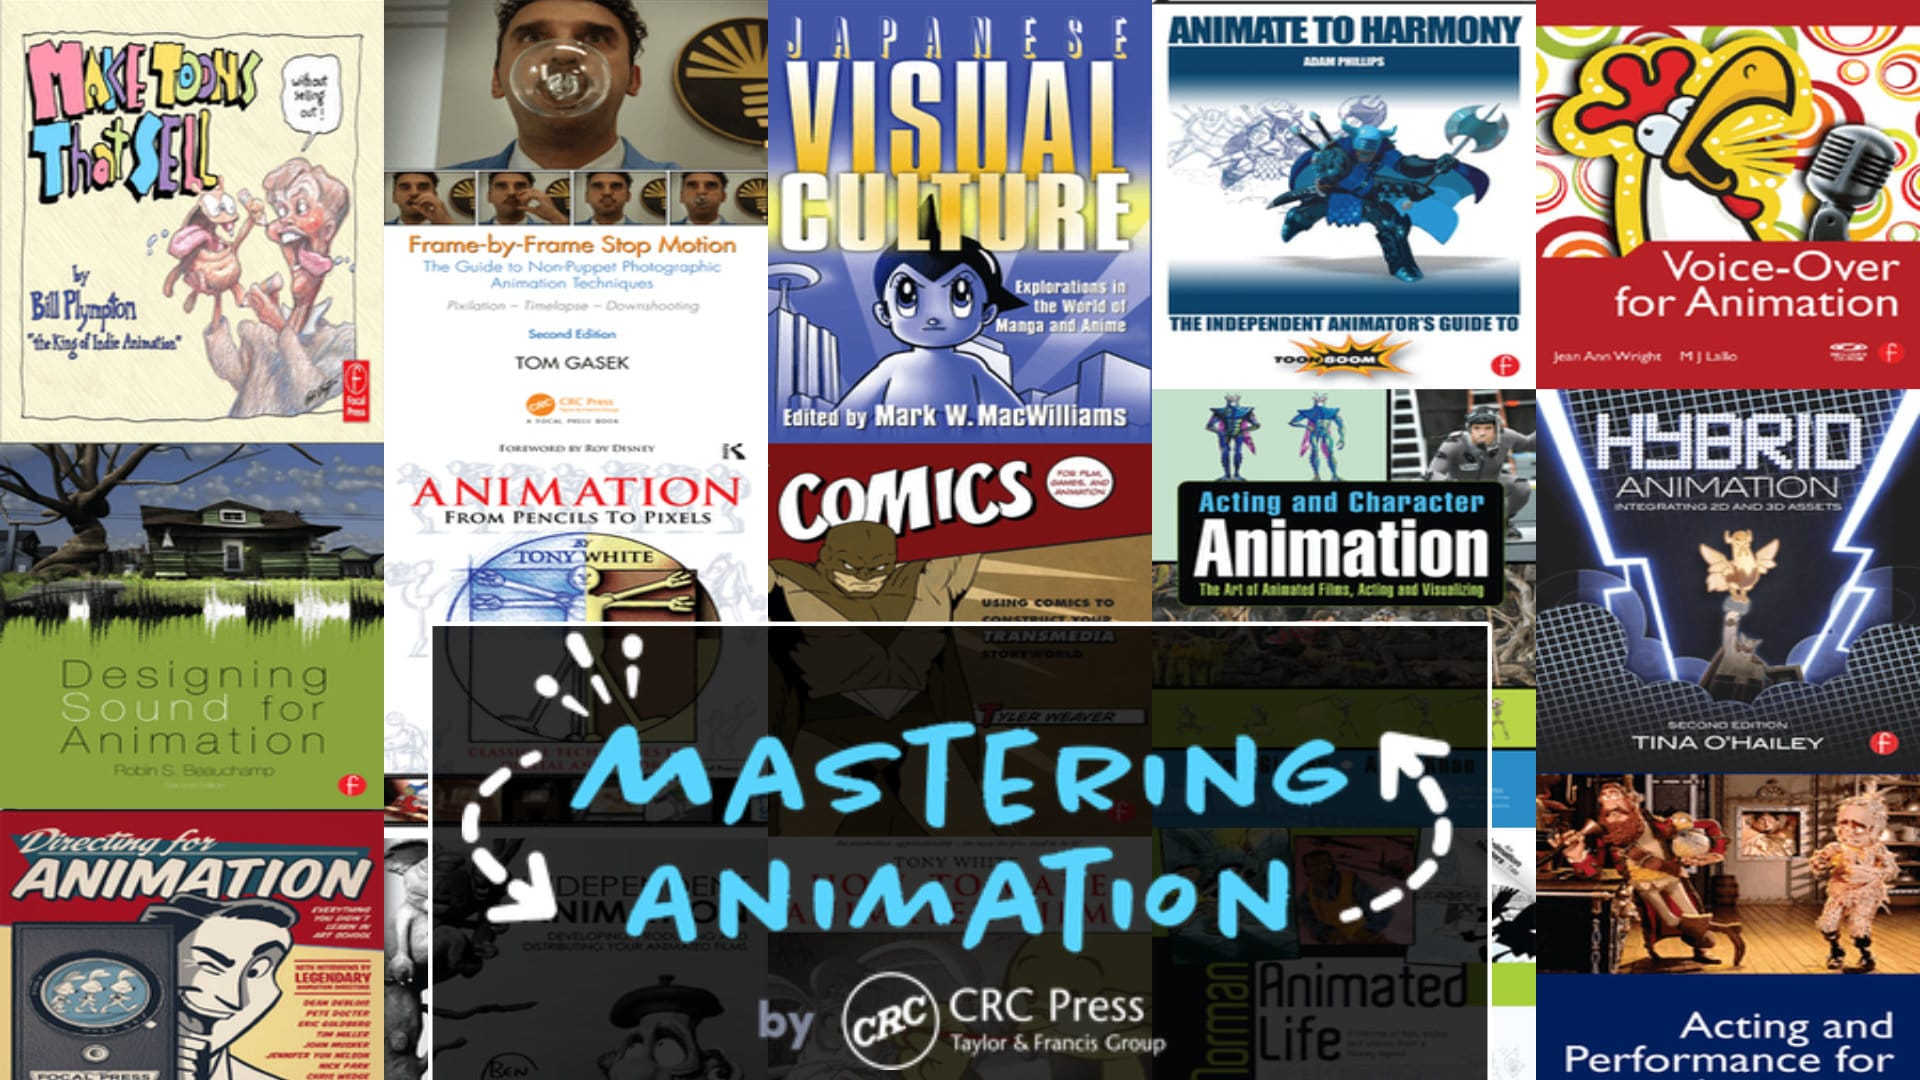 Mastering Animation by CRC Press Humble Bundle